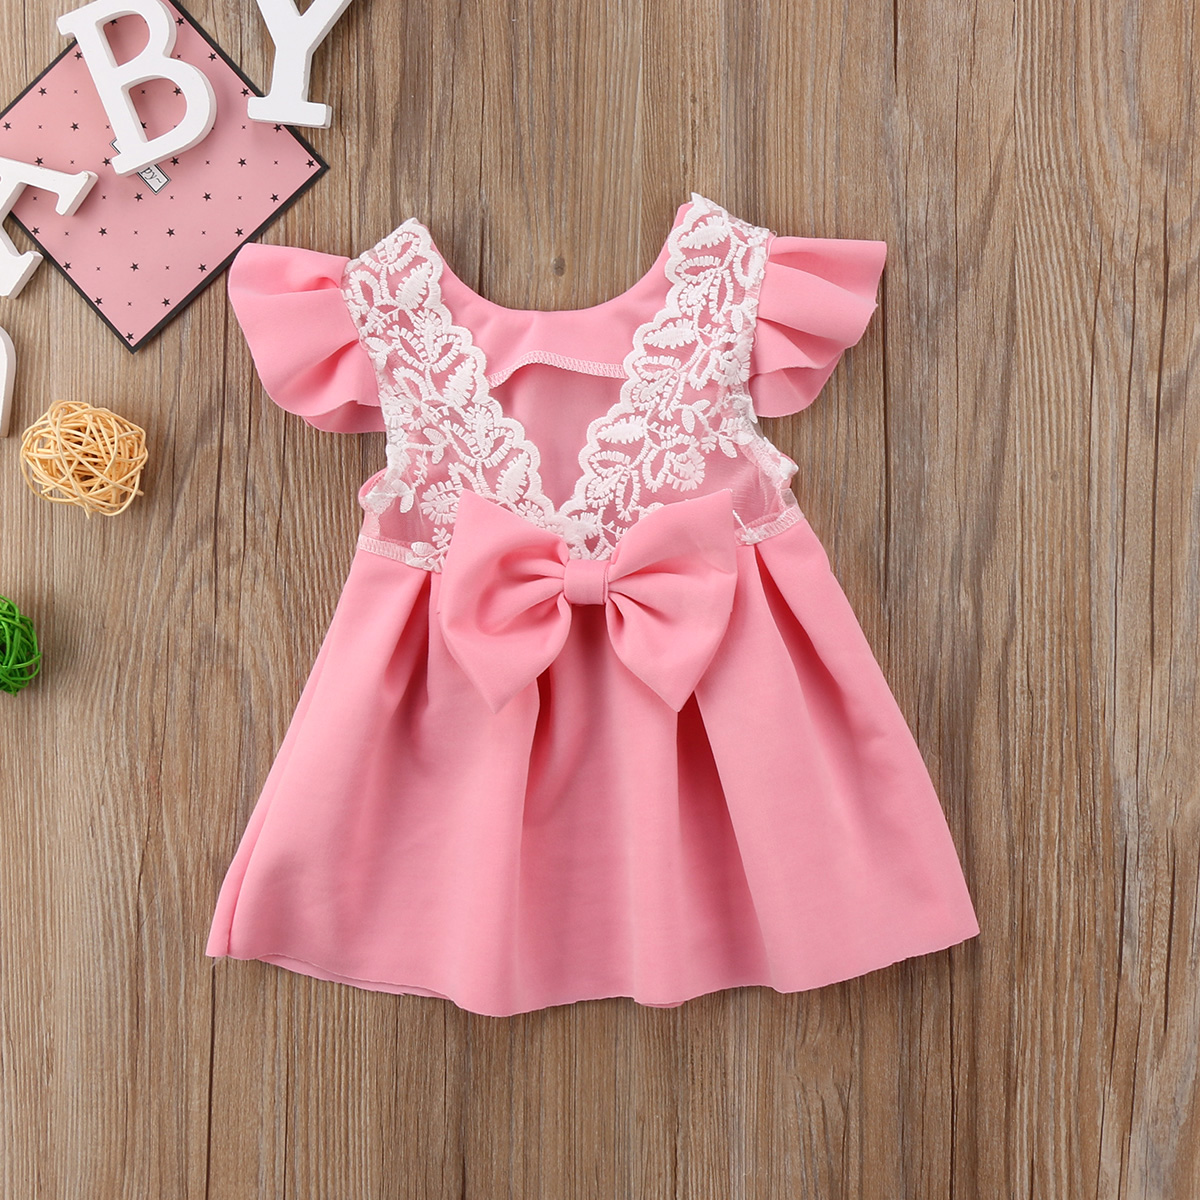 Pudcoco Baby Girls Dress Toddler Girls Backless Lace Bow Princess Dresses Tutu Party Wedding birthday Dress for girls Easter infant toddler girls dress lace cake dresses children princess backless tutu party gown 1st birthday vestido summer clothes 1 6y